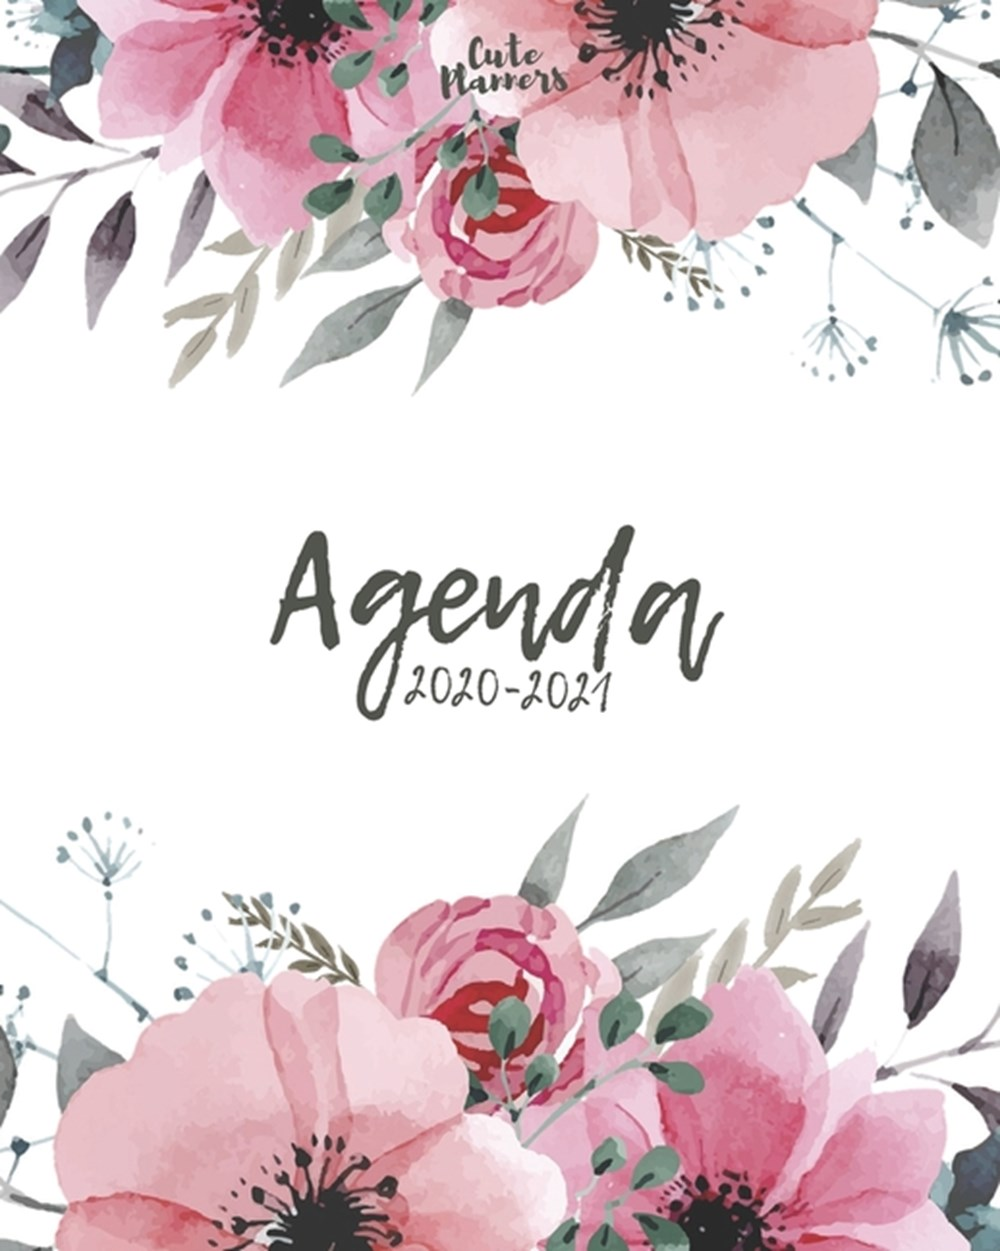 Agenda 2020 -2021 Cute Planners / Pretty floral Two Year Daily Weekly planner organizer ( Jan 2020 -